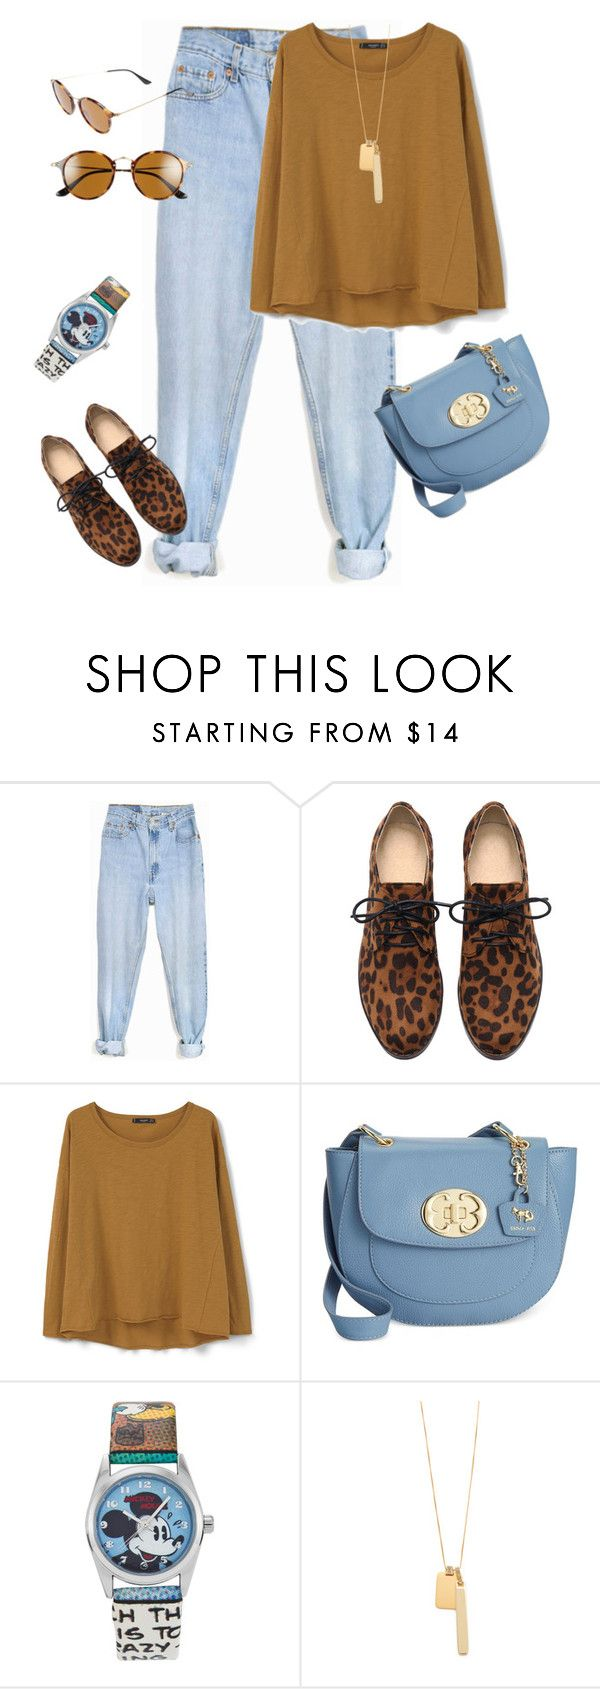 """""""outfit 3254"""" by natalyag ❤ liked on Polyvore featuring Levi's, MANGO, Emma Fox, Disney, Madewell, Ray-Ban, women's clothing, women, female and woman"""